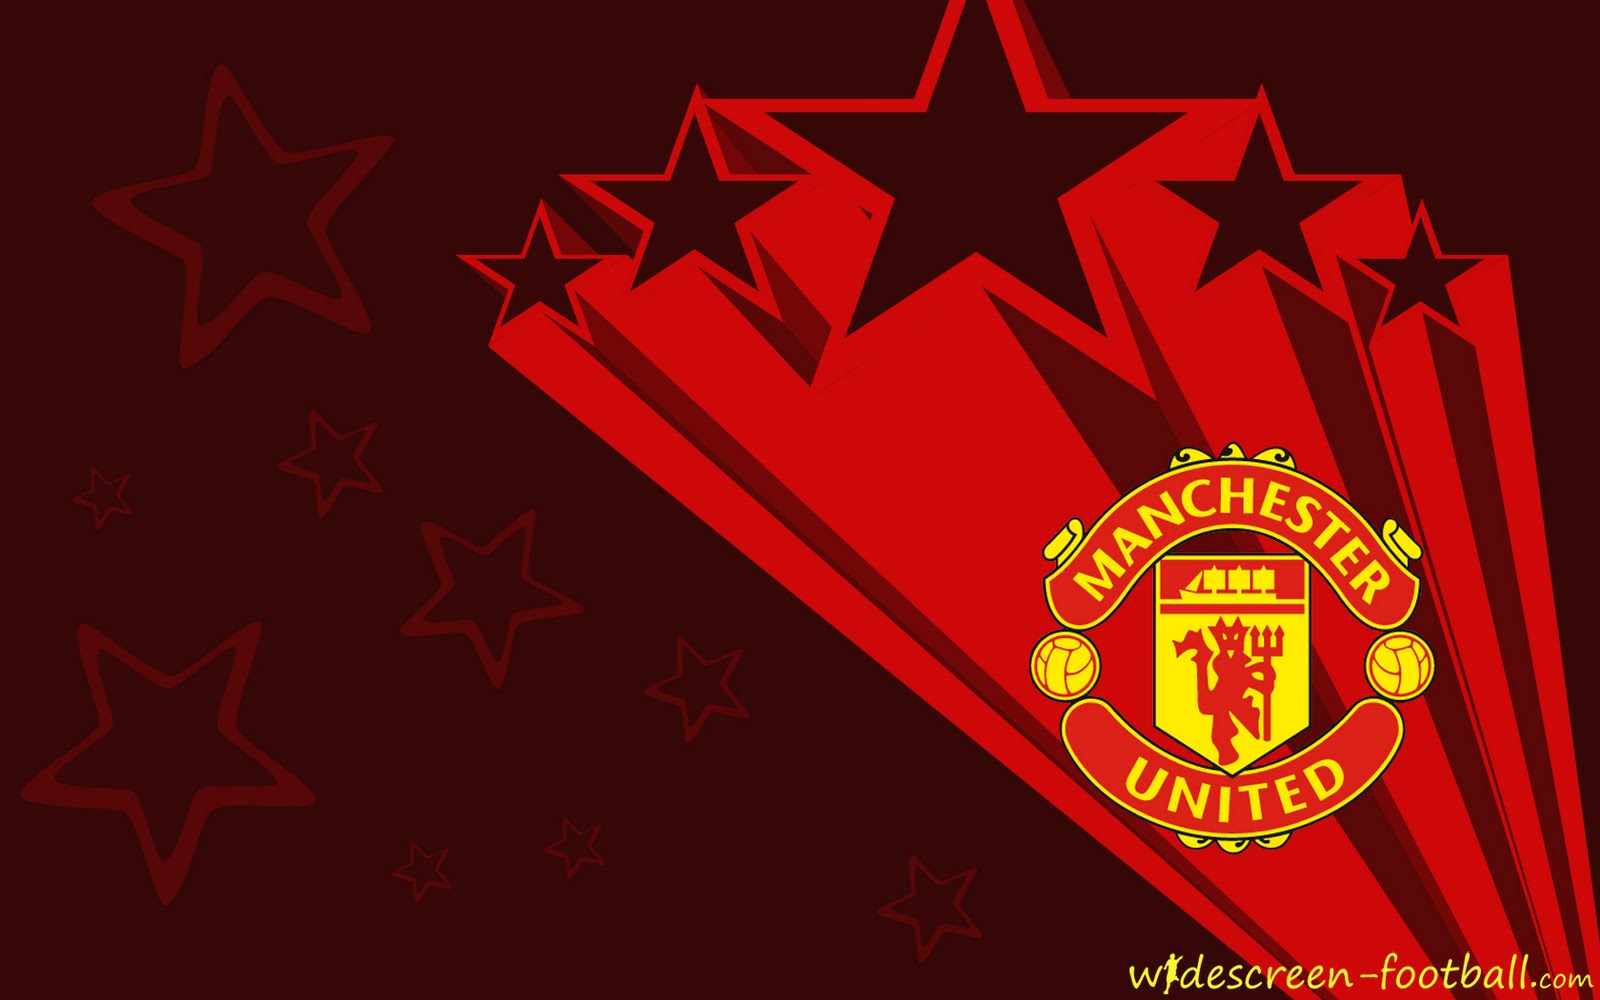 Manchester United Wallpapers HDwallpapers screensavers 1600x1000